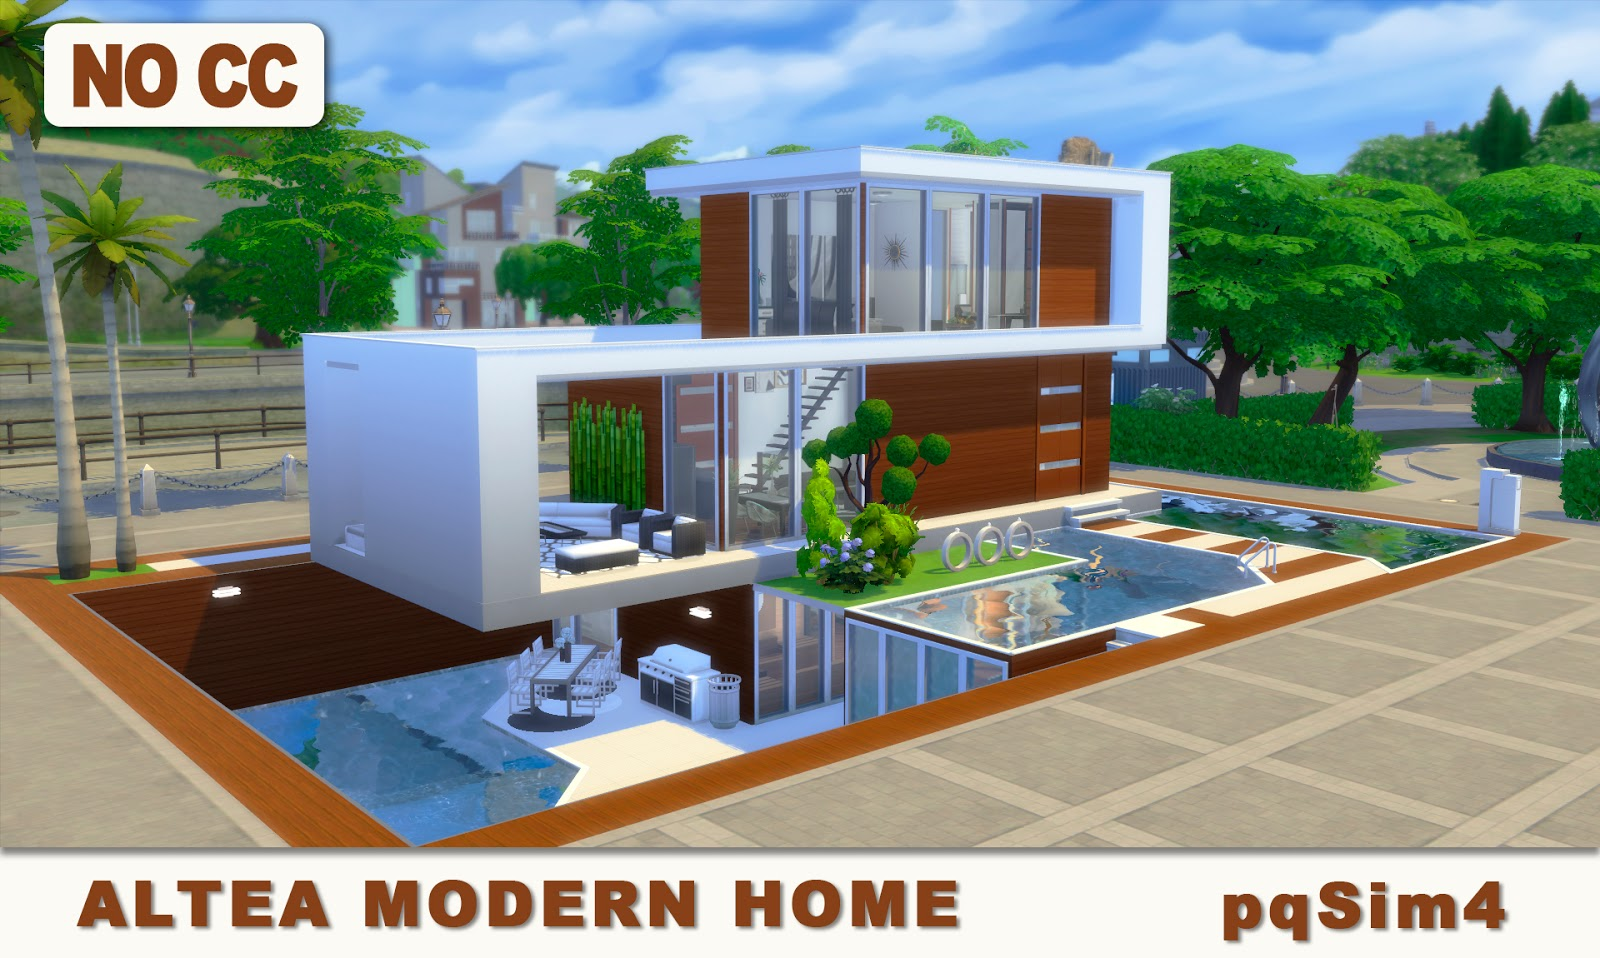 Altea modern home sims 4 speed build and download for Casas modernas sims 4 paso a paso